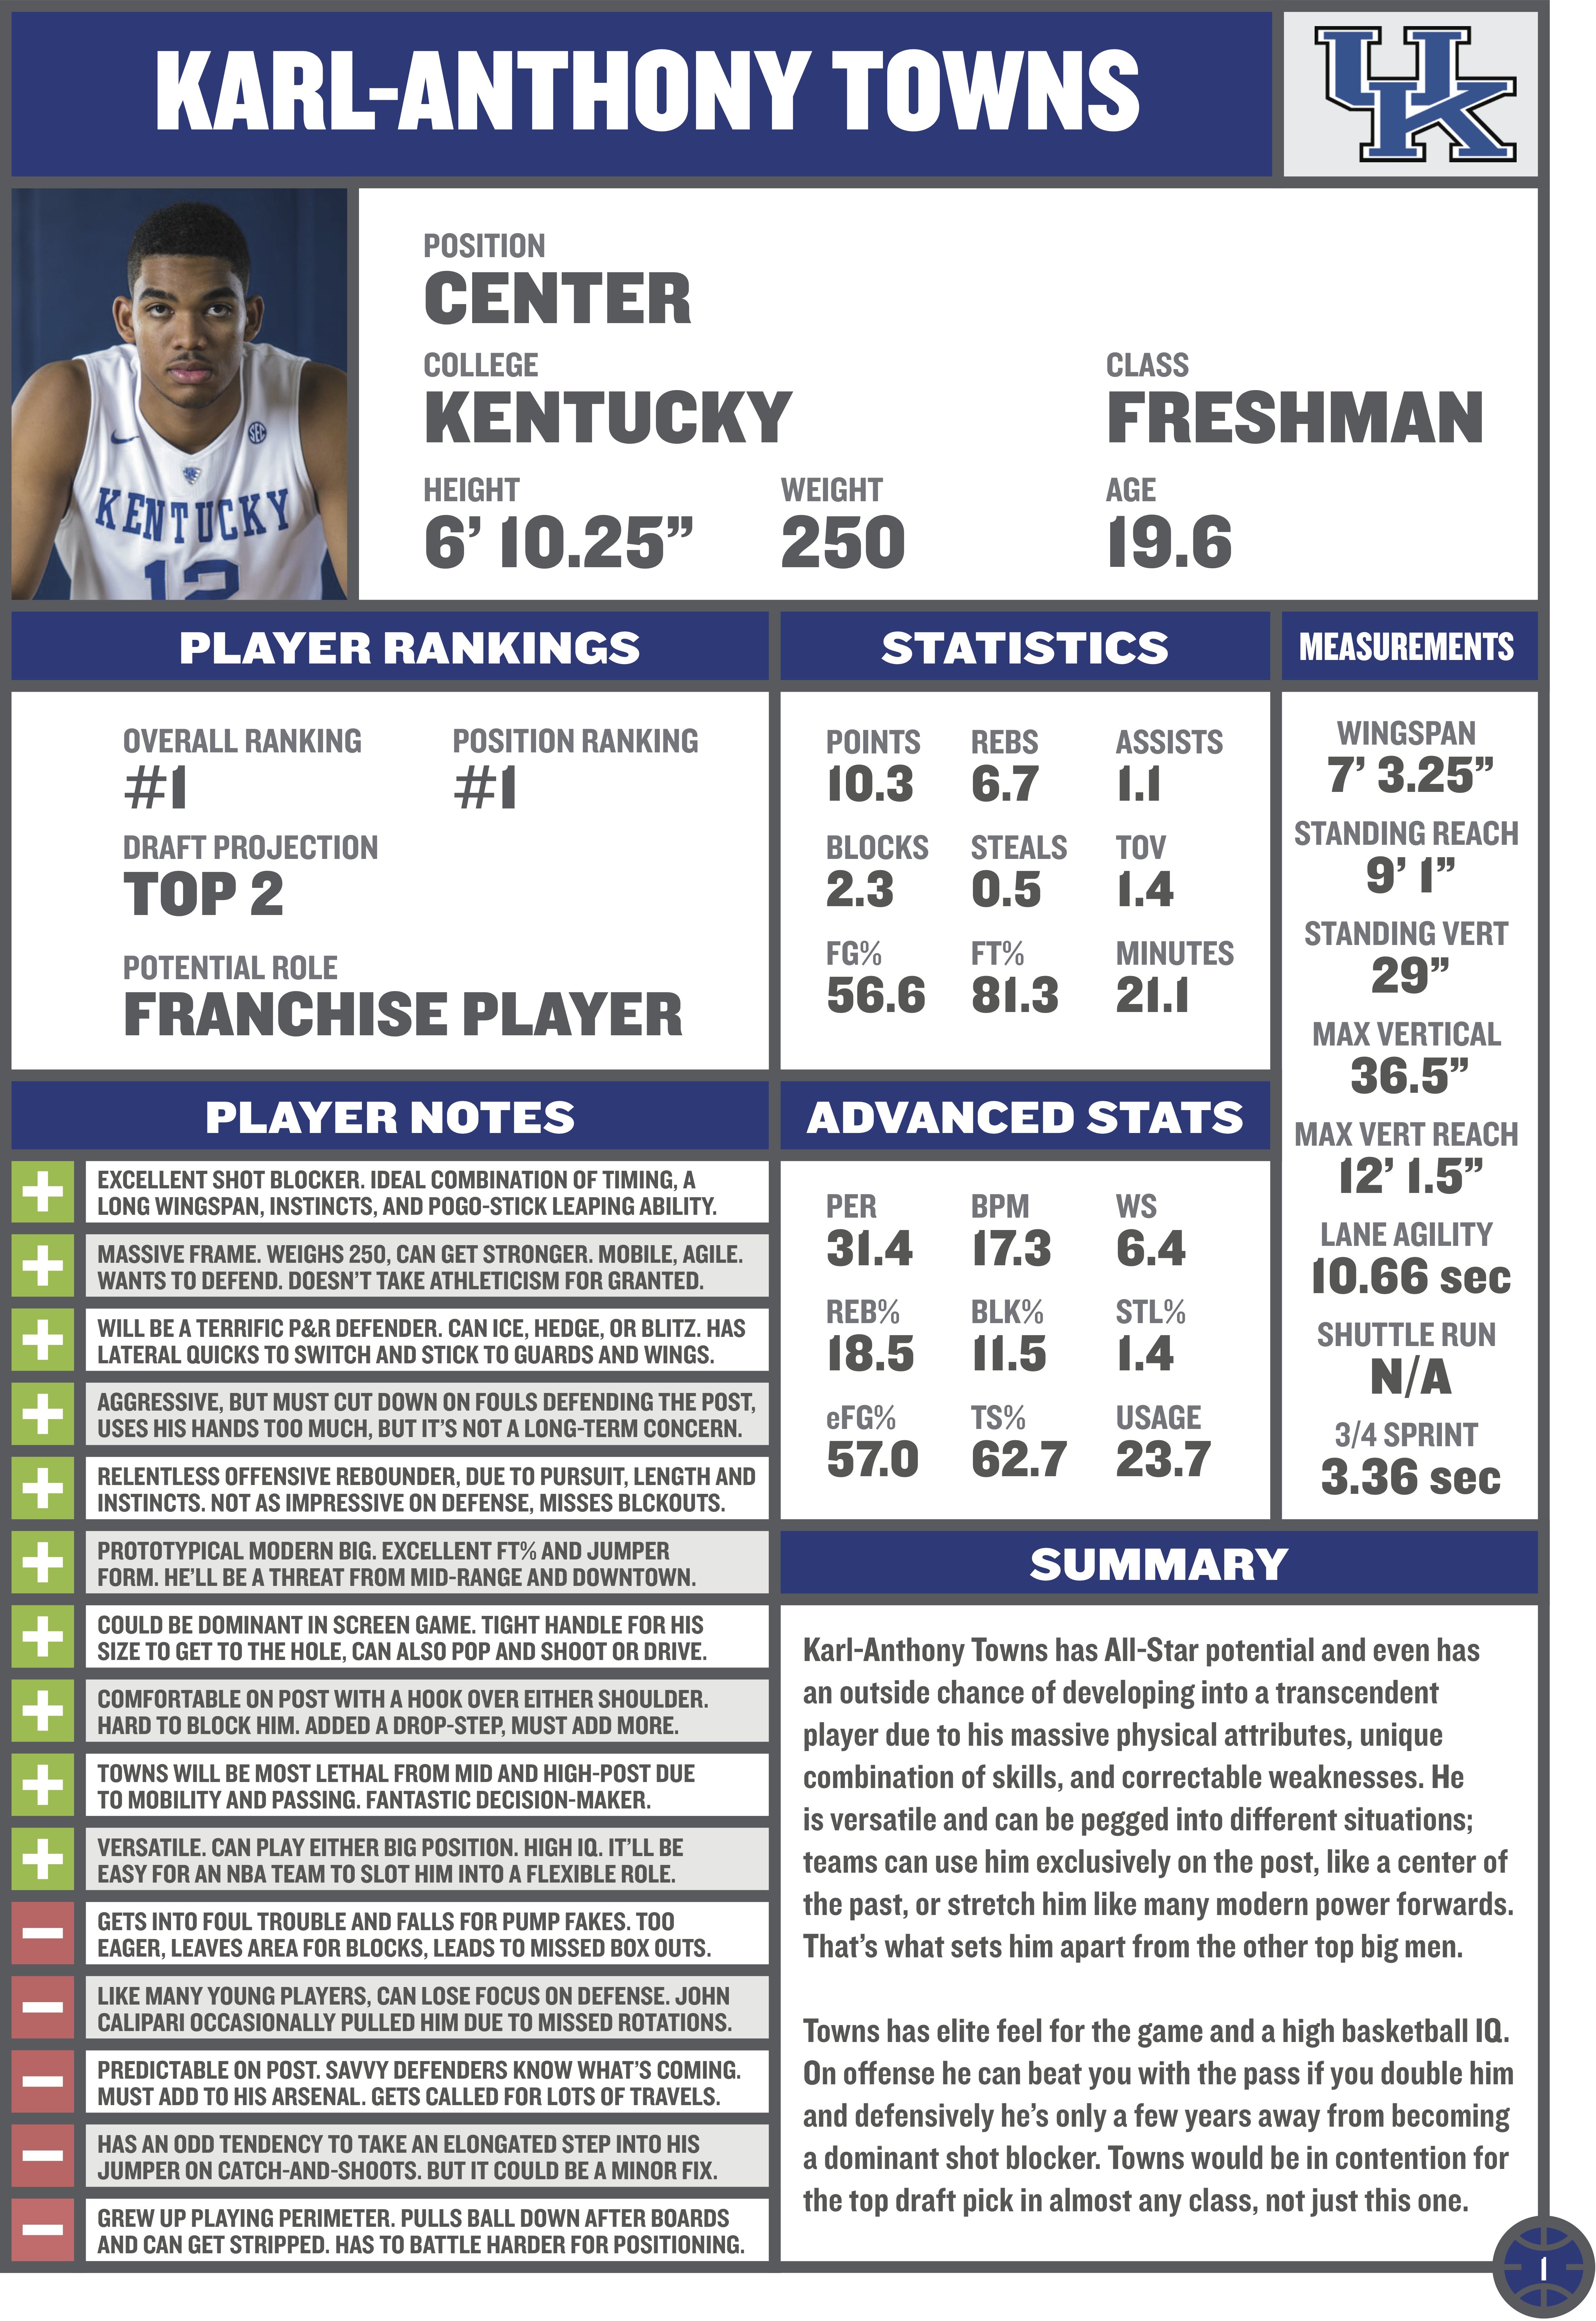 For More Scouting Reports Like This Purchase My NBA Draft Guide Which Will Be Out In June